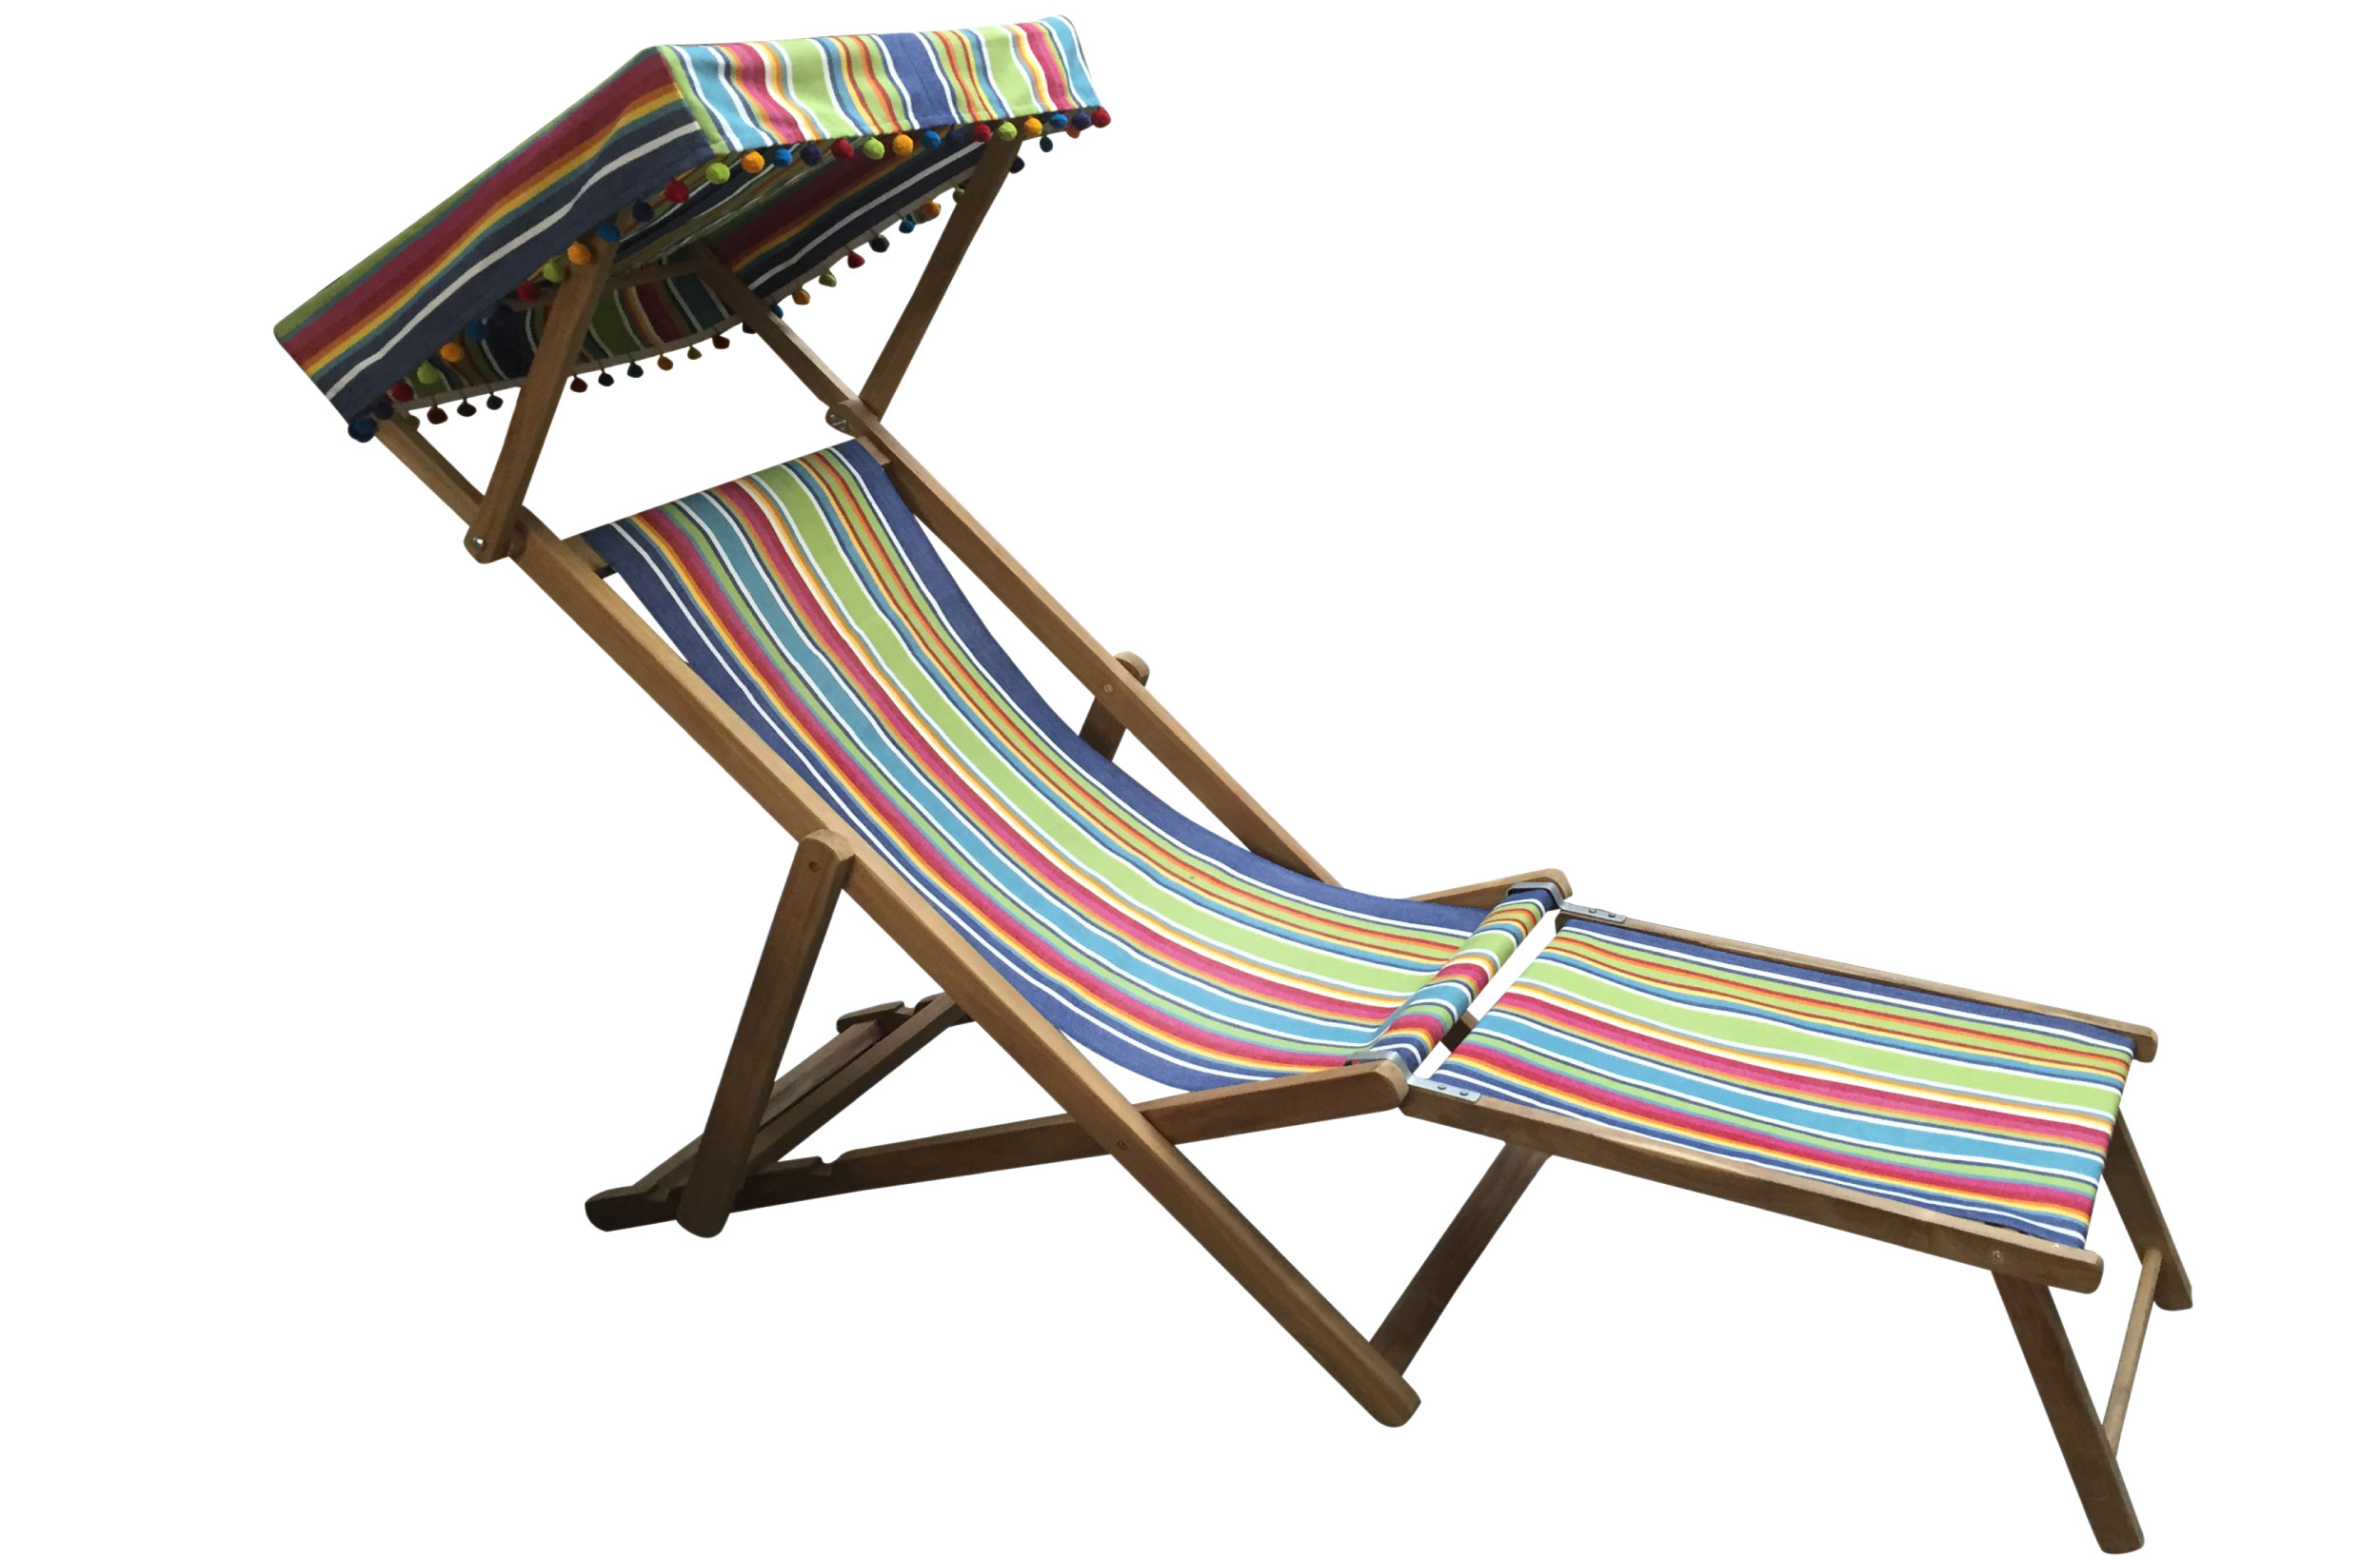 Edwardian Deckchairs with Canopy and Footstool blue, green, red